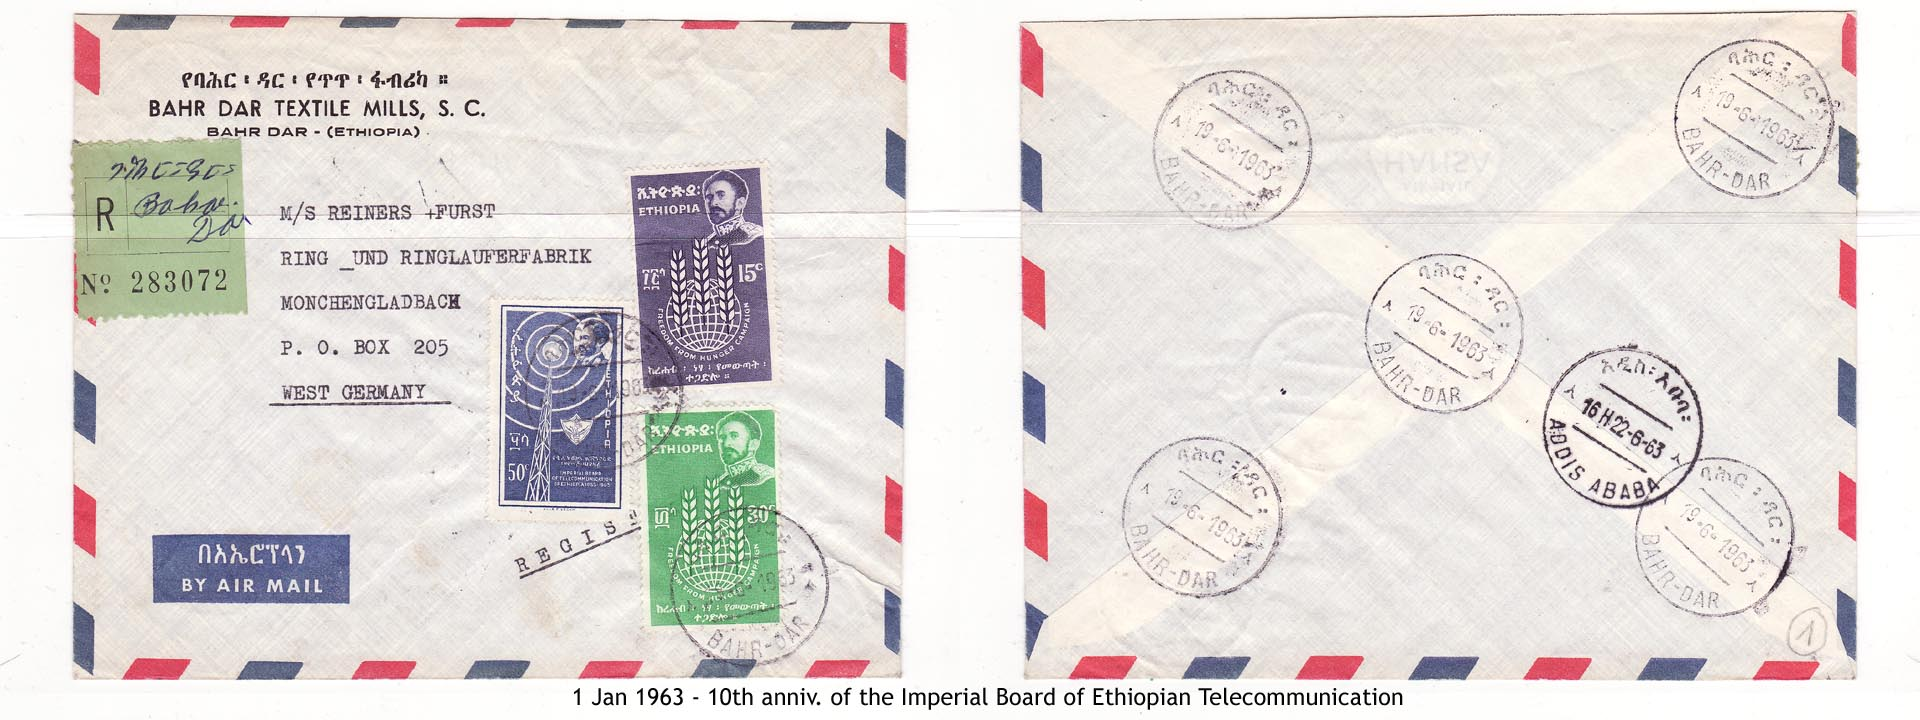 19630101 – 10th anniv. of the Imperial Board of Ethiopian Telecommunication